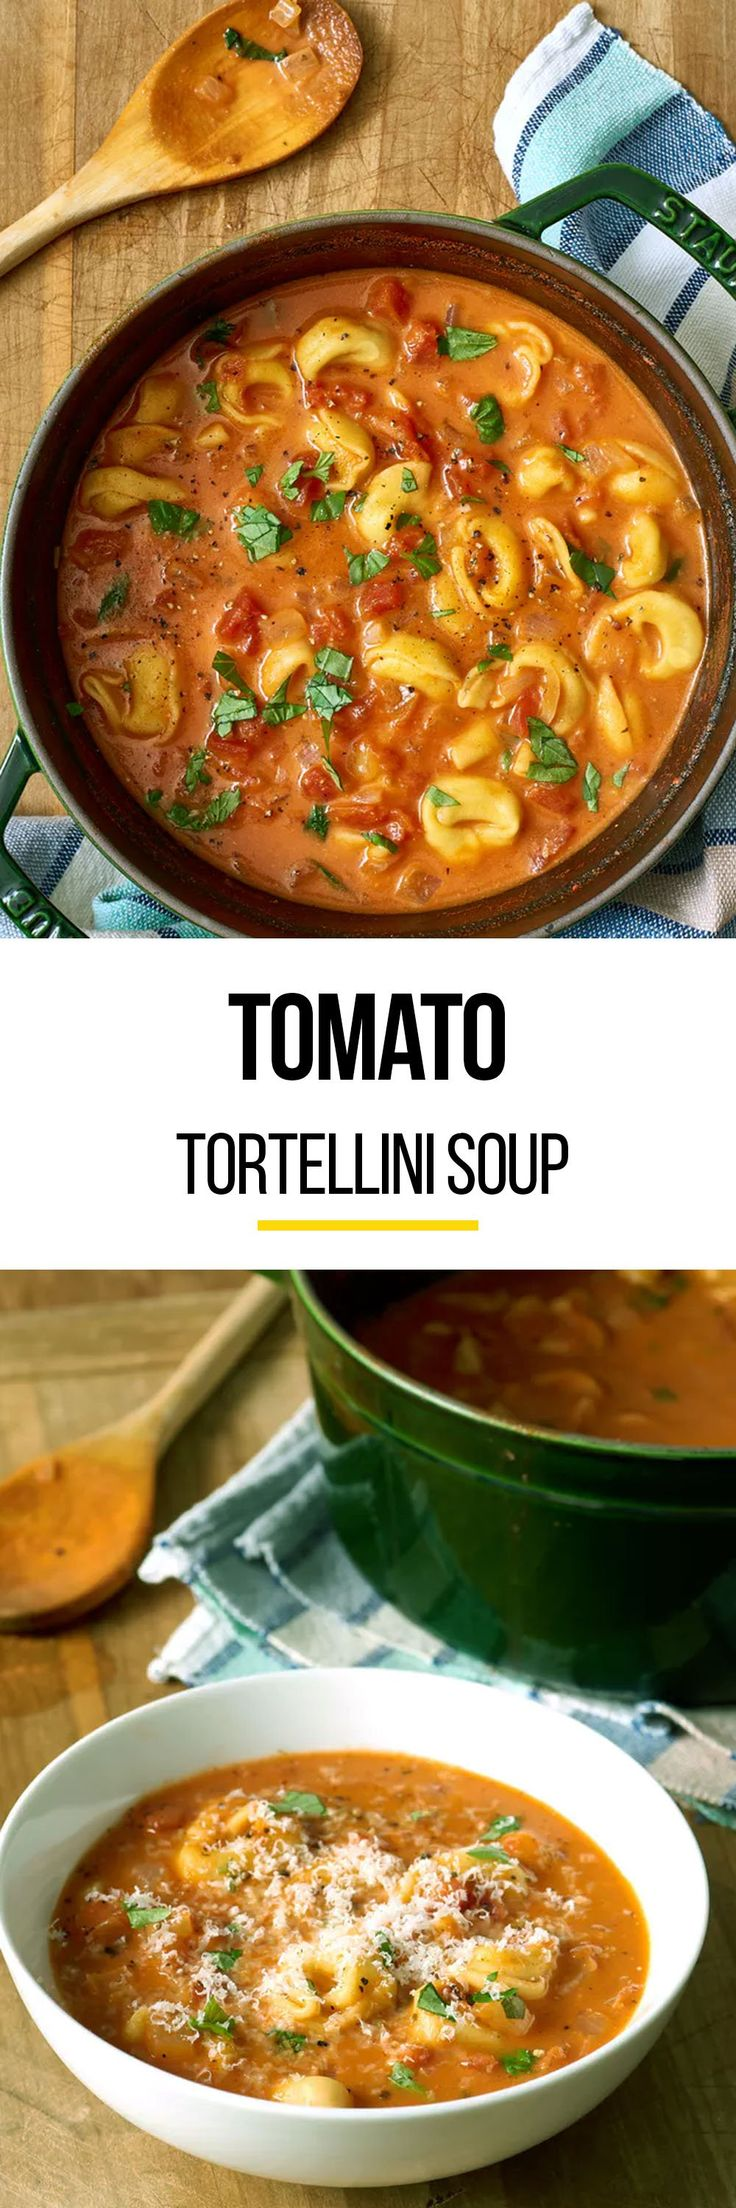 Tomato soup has been, and always will be, a comforting dish. But we've stepped up the comforting soup by making it an easy tomato tortellini soup. This soup recipe is perfect for both meat eaters and vegetarians. This recipe uses unsalted butter, medium onion, garlic, kosher salt, low-sodium vegetable or chicken broth, crushed tomatoes, heavy cream and fresh or frozen tortellini, and Parmesan cheese